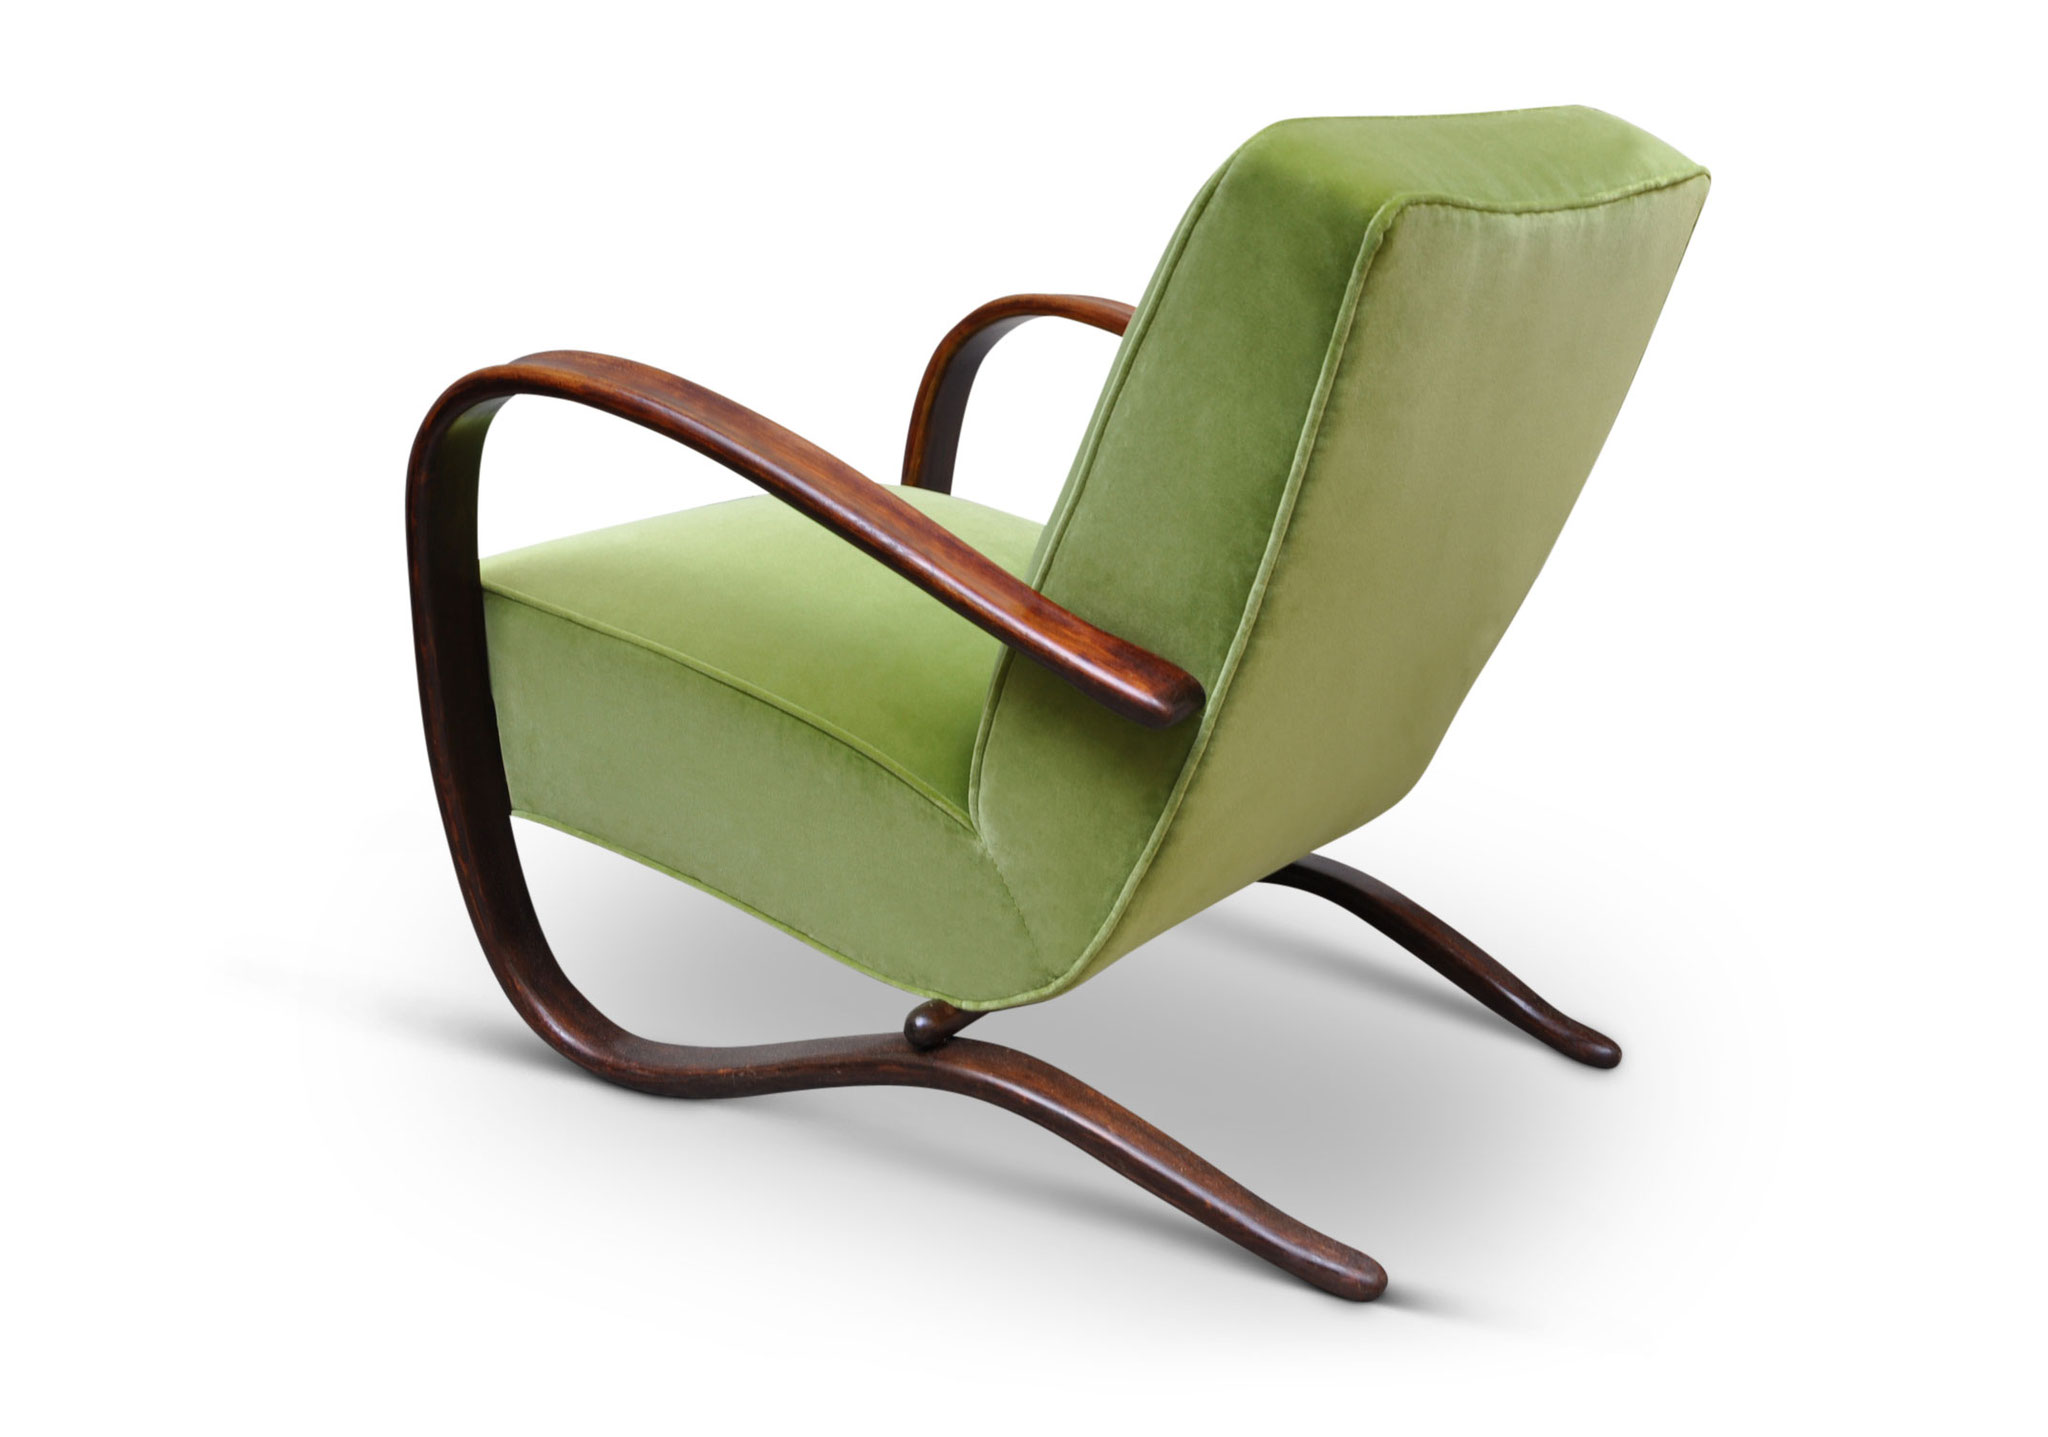 H269 art deco chair lime velvet